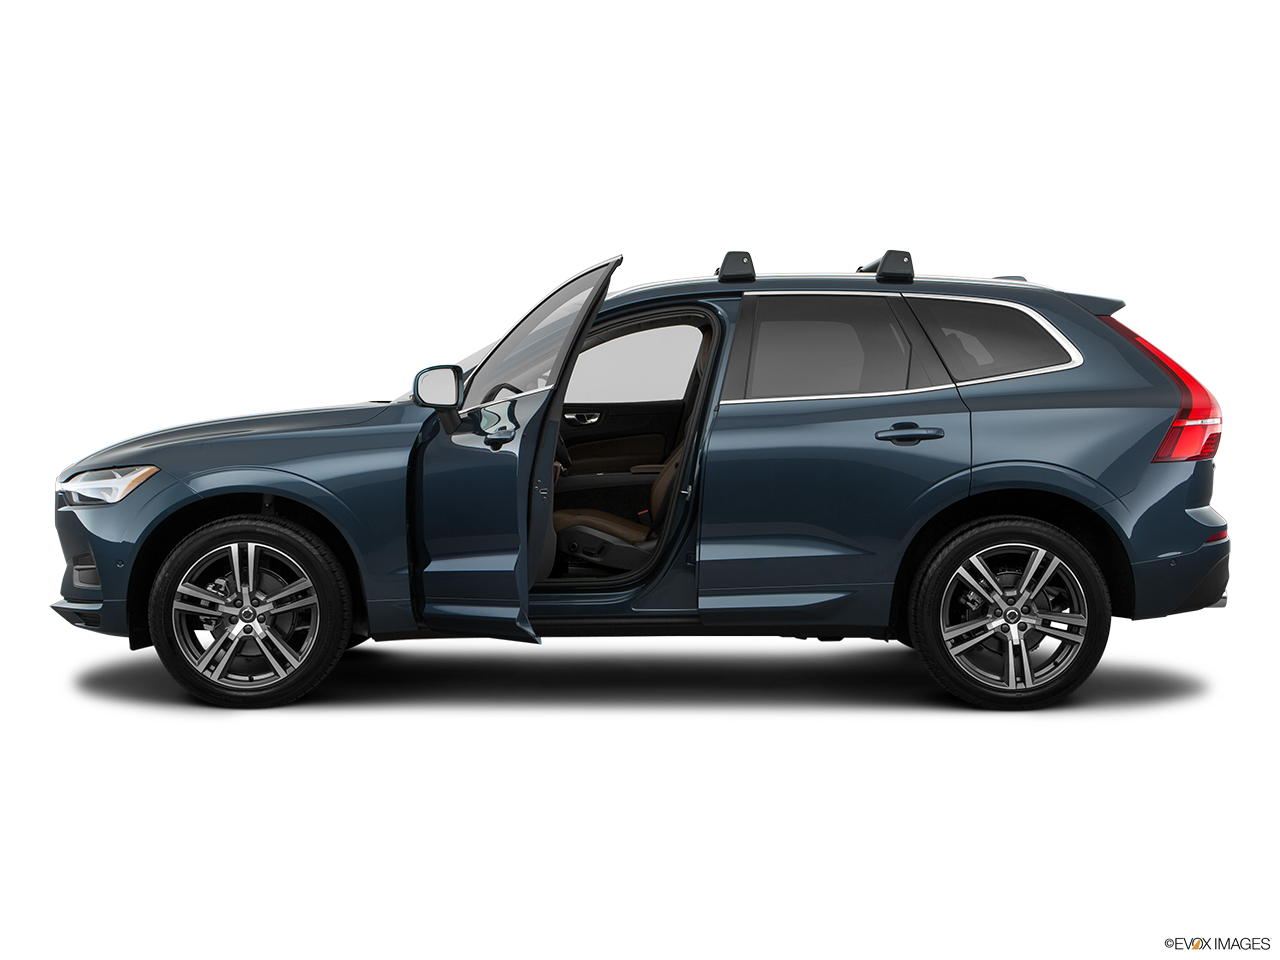 Side view of the Volvo XC60 PHEV